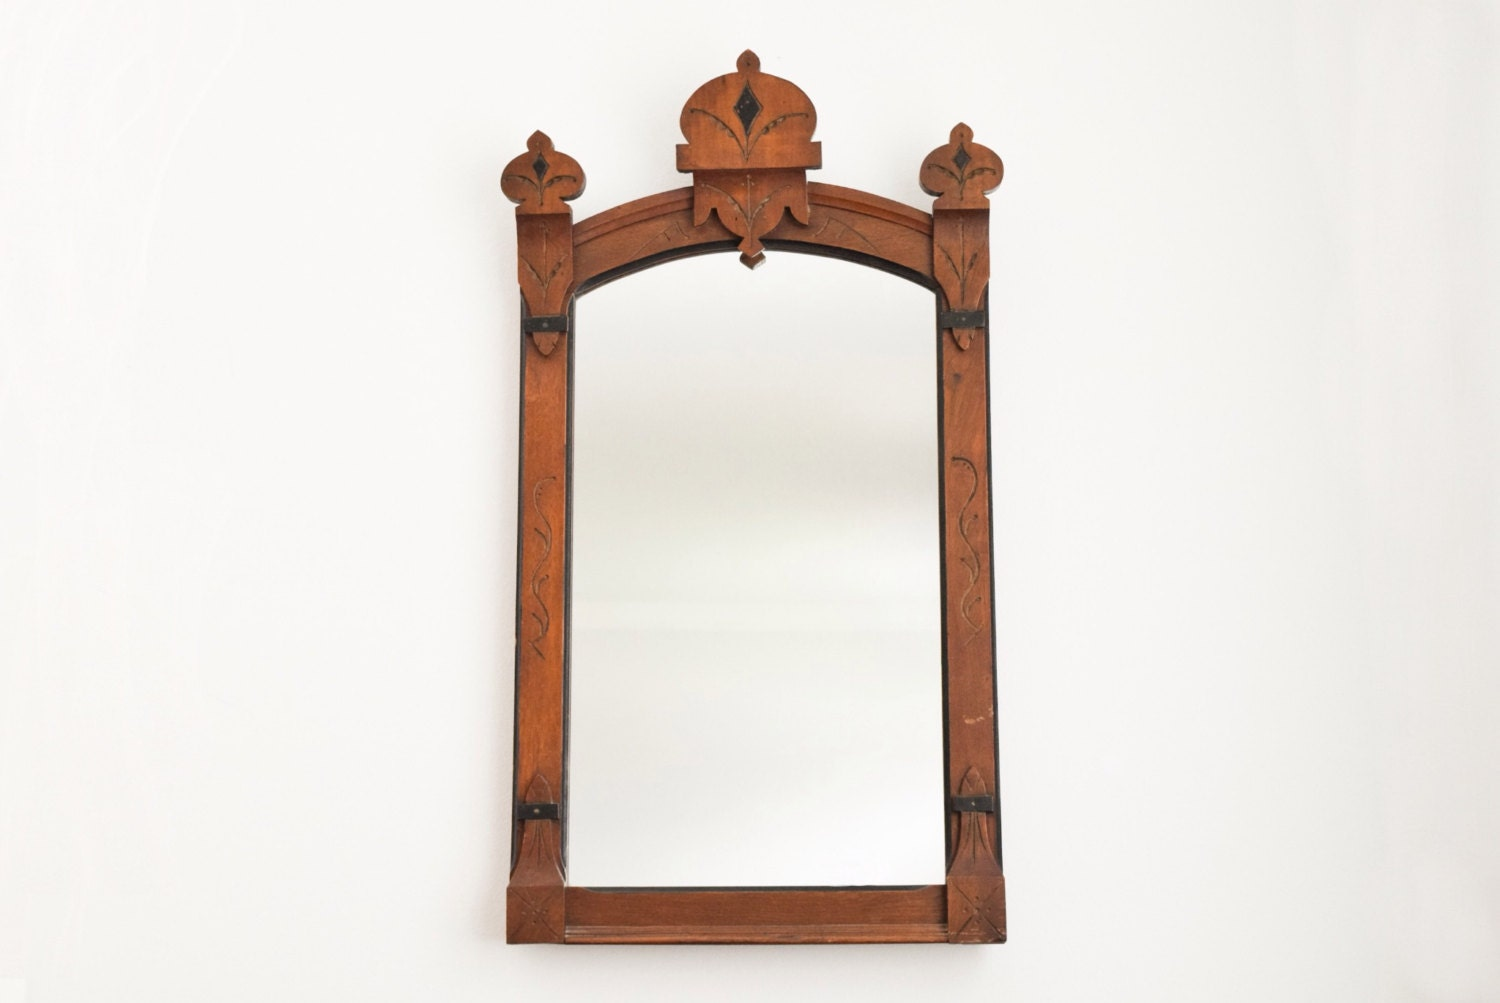 Decorative Wall Frames Photos : Antique wood mirror decorative wall frame